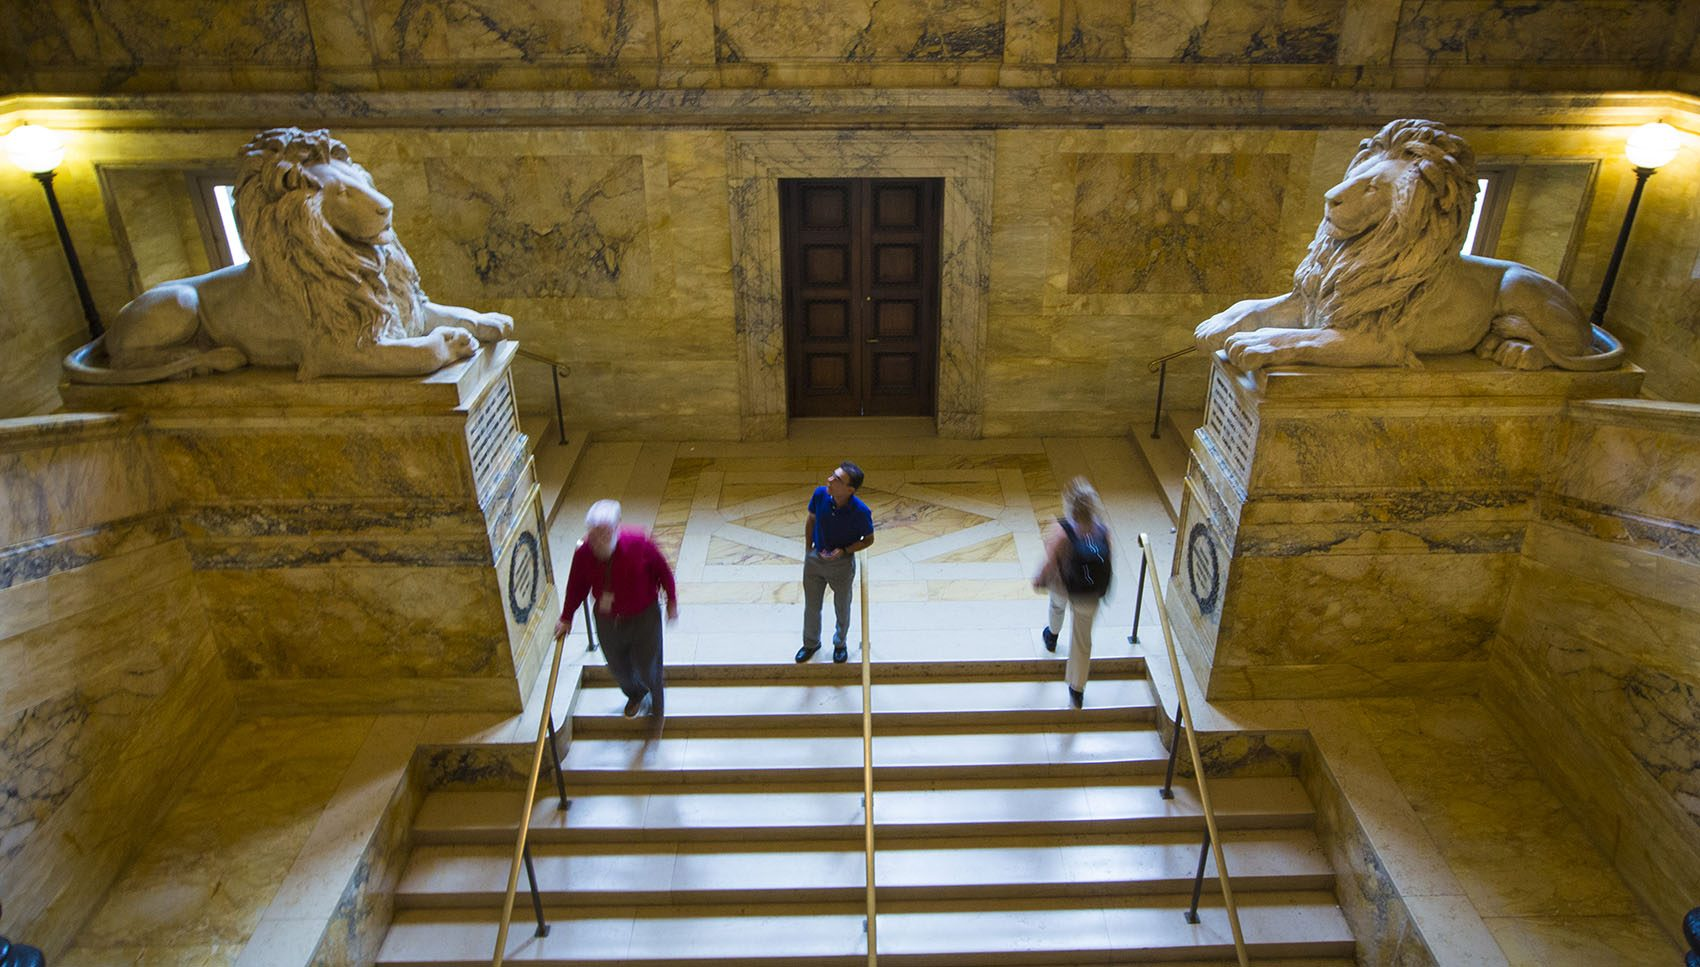 The pair of lion statues in the grand staircase at the Boston Public Library. (Jesse Costa/WBUR)